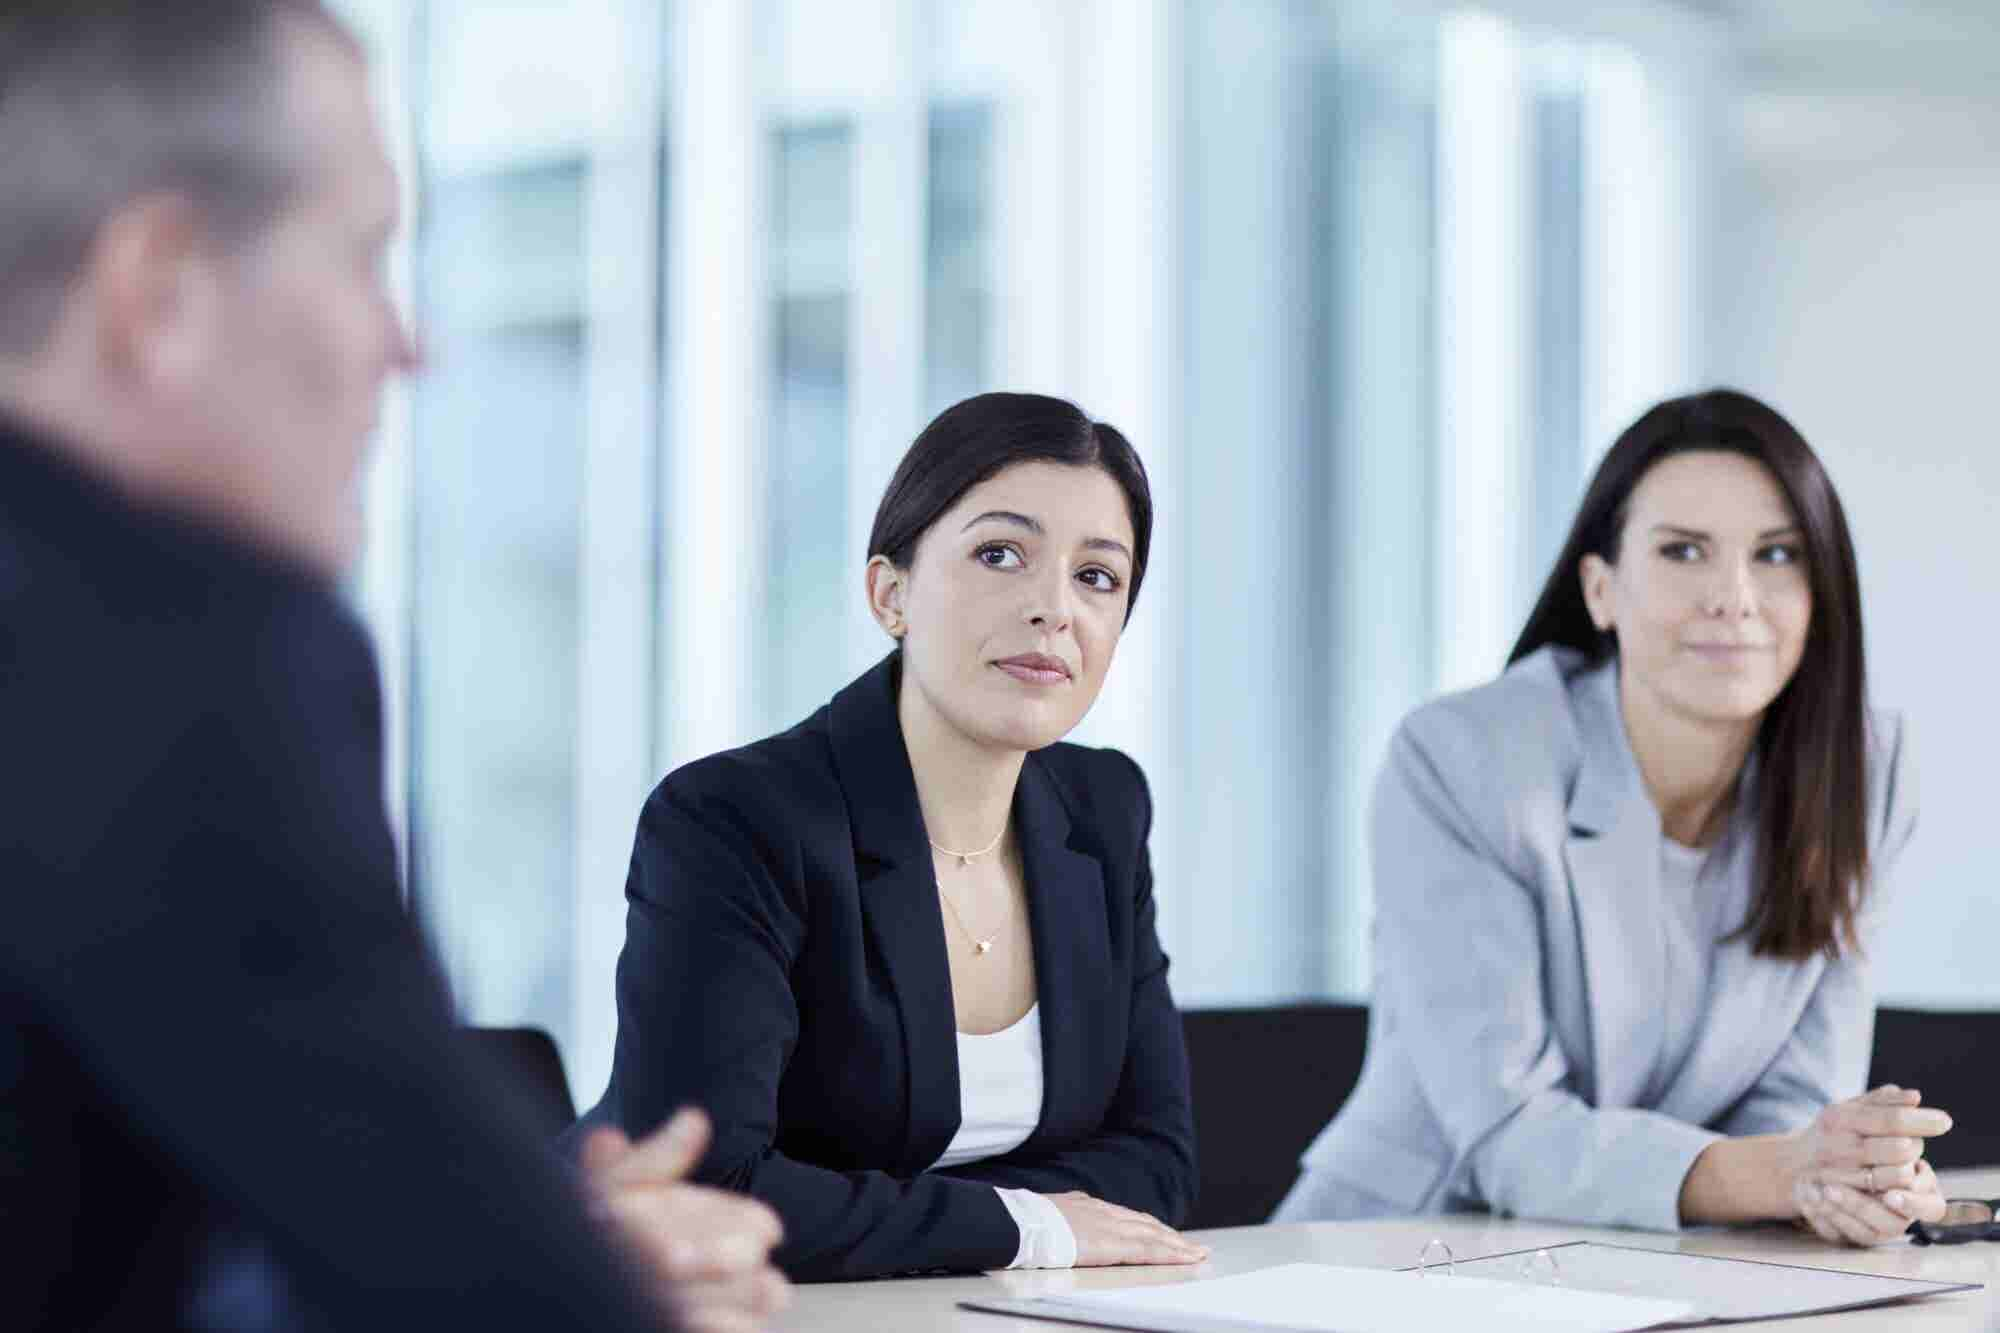 How to Protect Your Career From Those Who Try to Undermine You